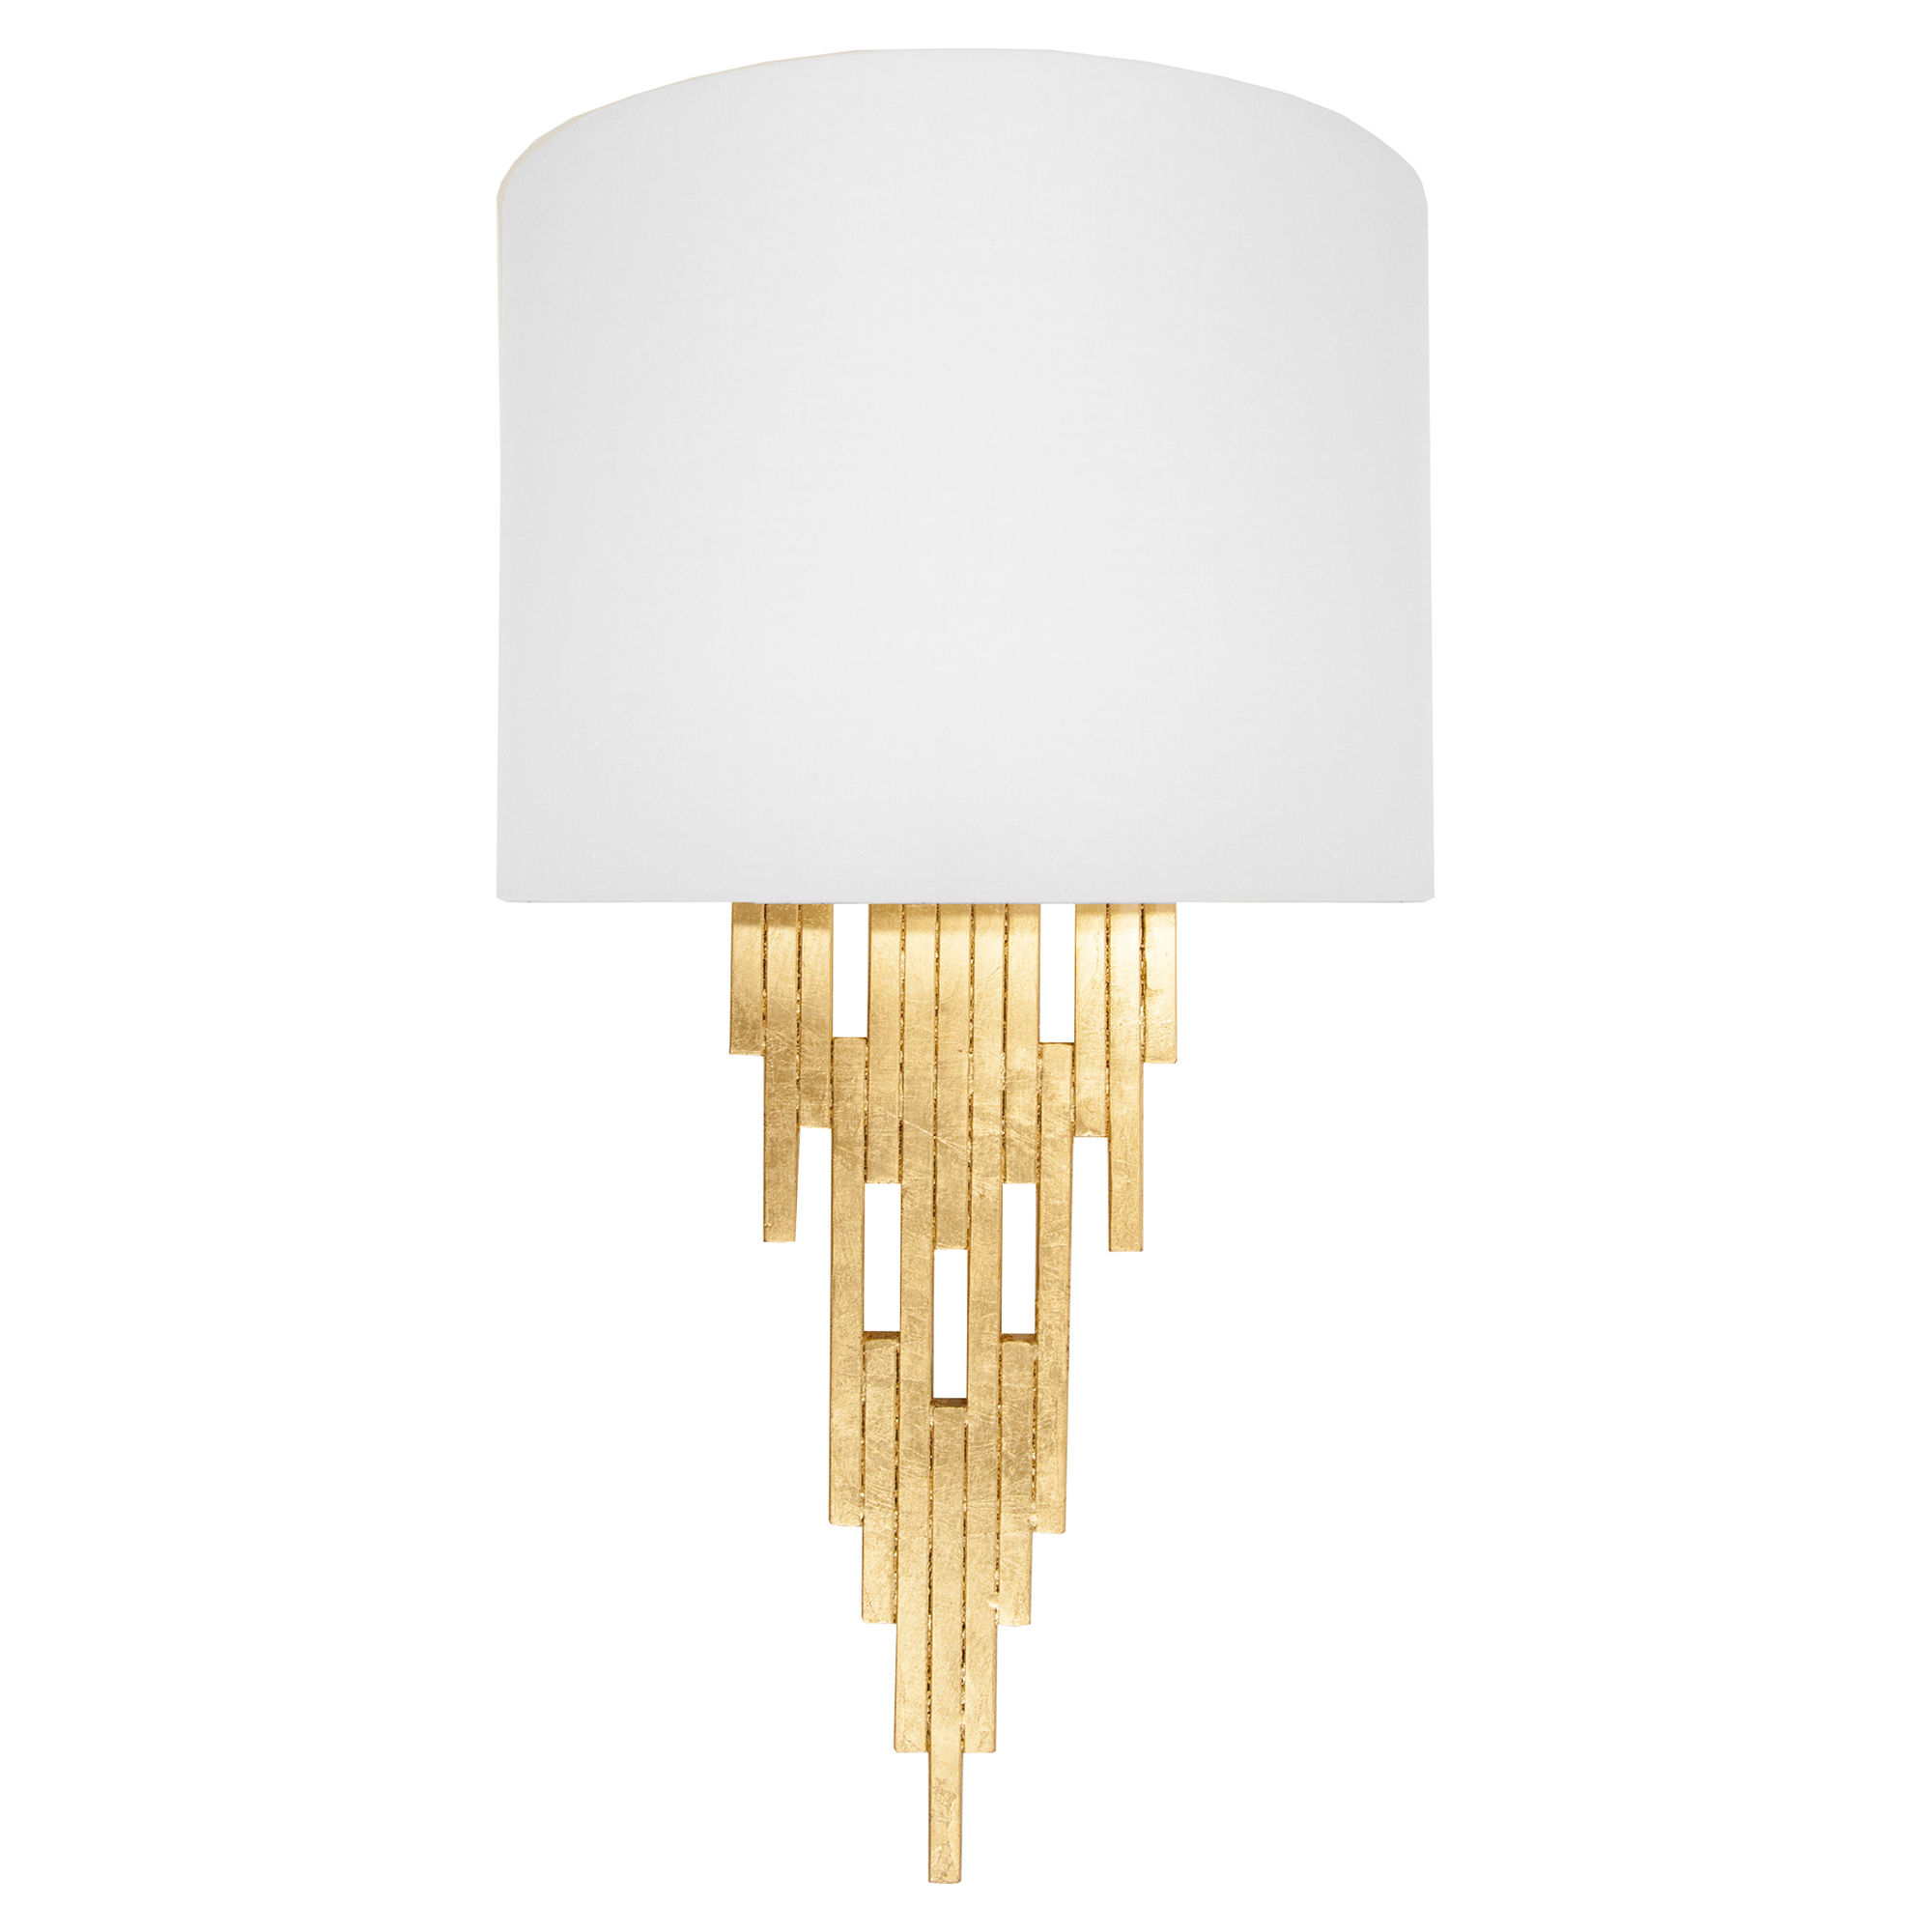 Dilys Regency Modern Gold Leaf Tapering Sconce